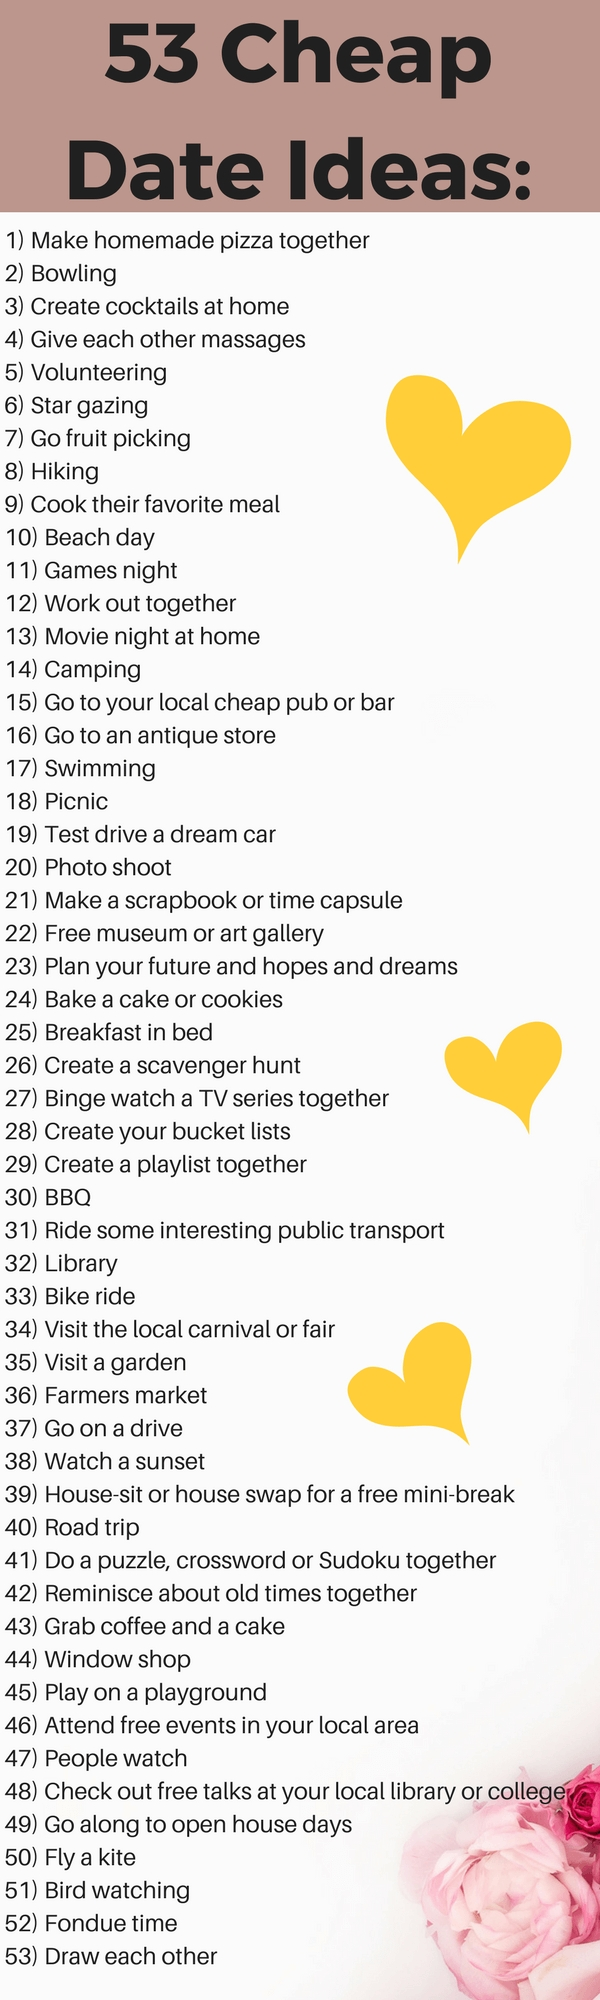 10 Elegant Fun Ideas For A Date 53 cheap date ideas that will rock your love life 2 2020